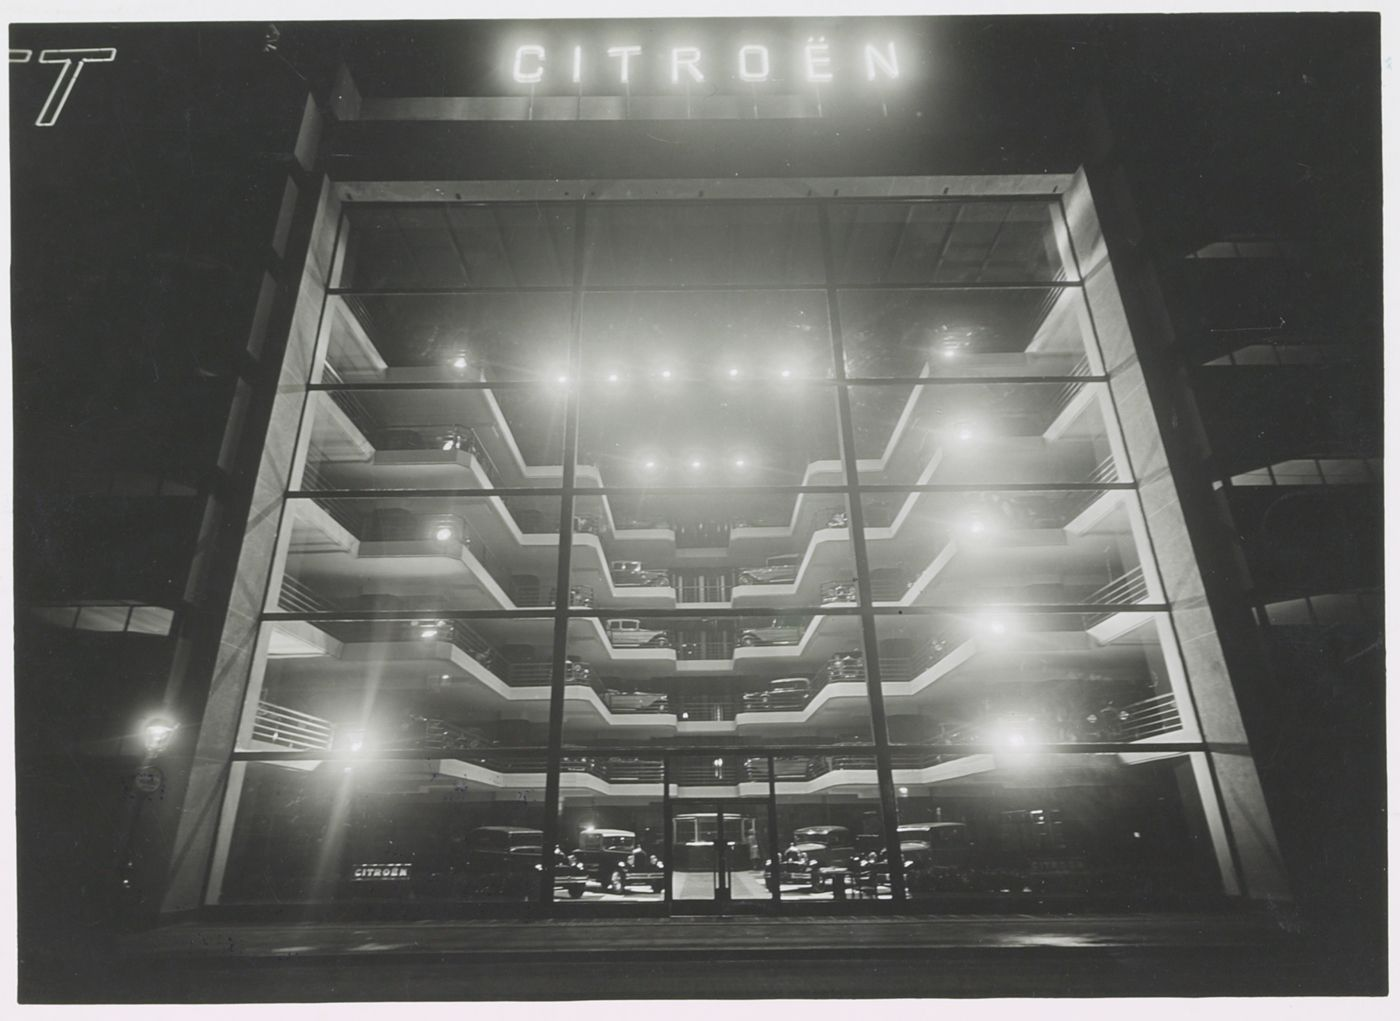 Original citroen showroom in paris garage marbeuf for Garage citroen paris